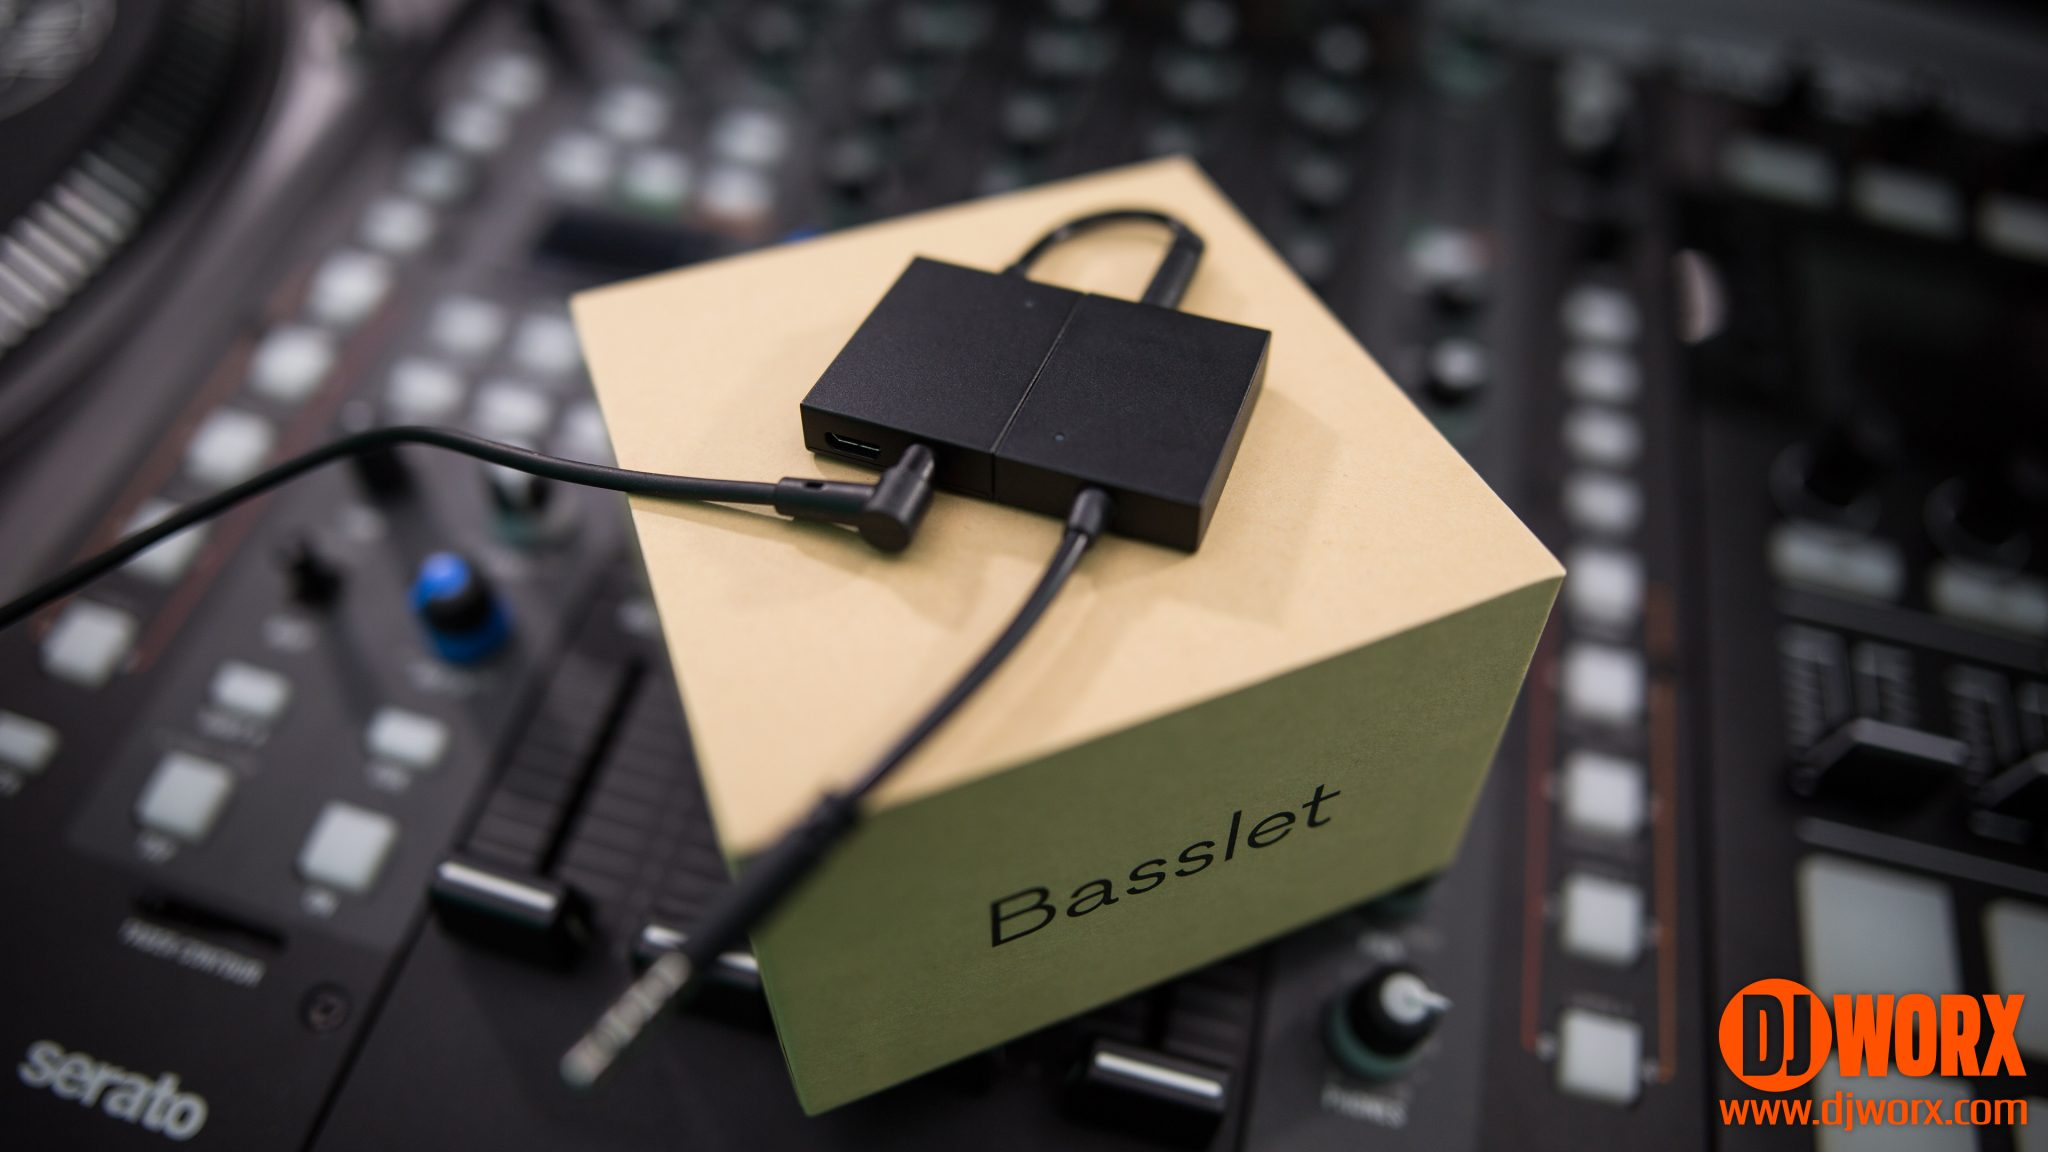 REVIEW: Basslet - wearable body-subwoofer 4